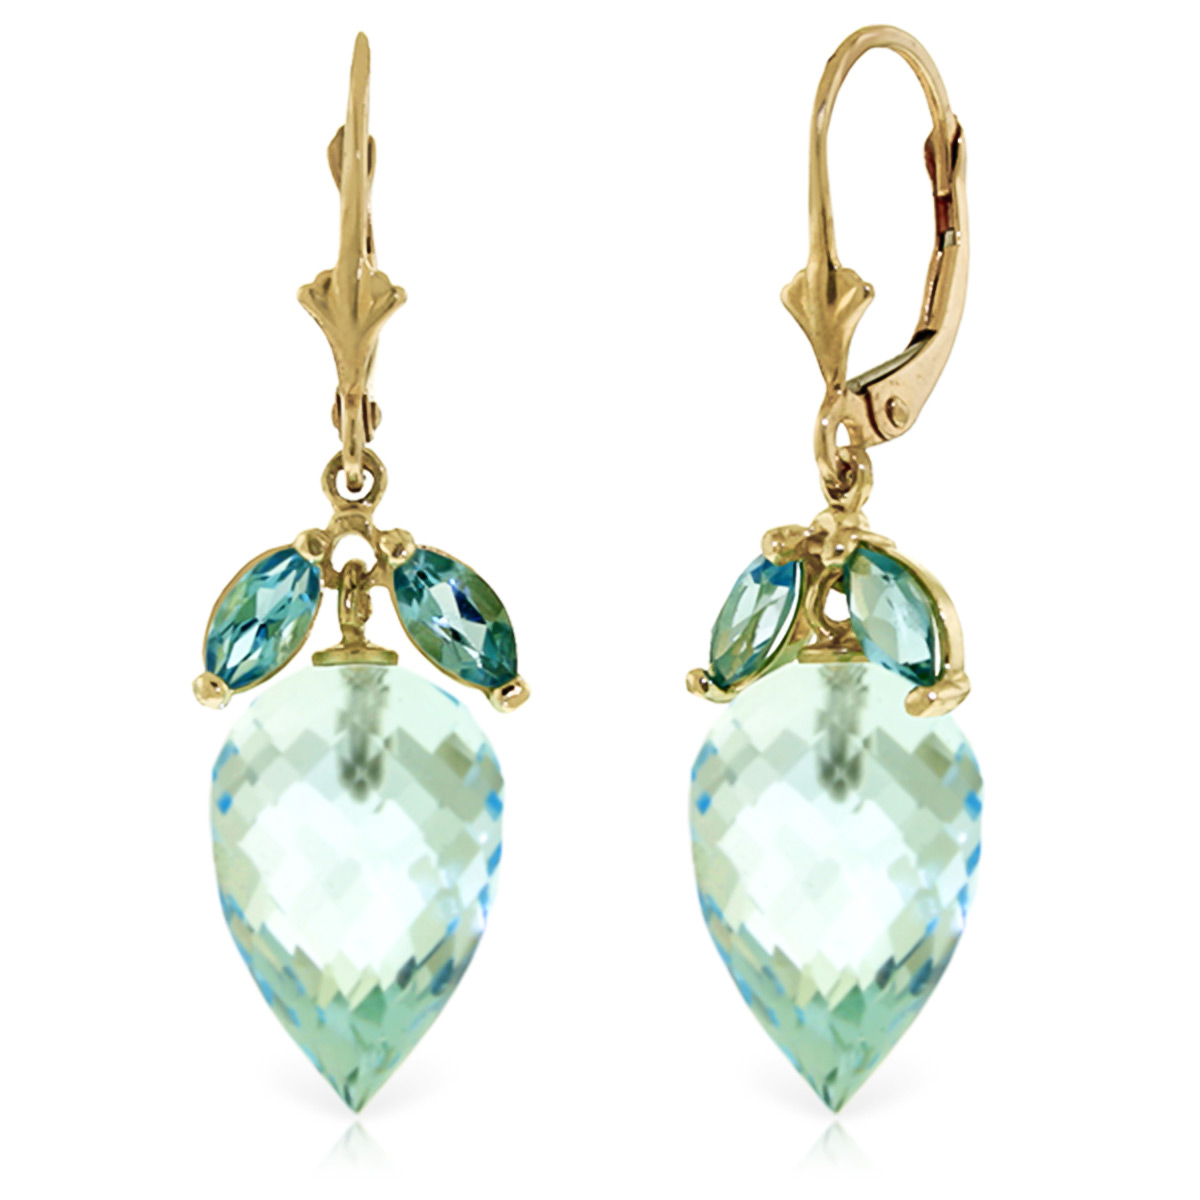 Blue Topaz Briolette Drop Earrings 23.5ctw in 9ct Gold